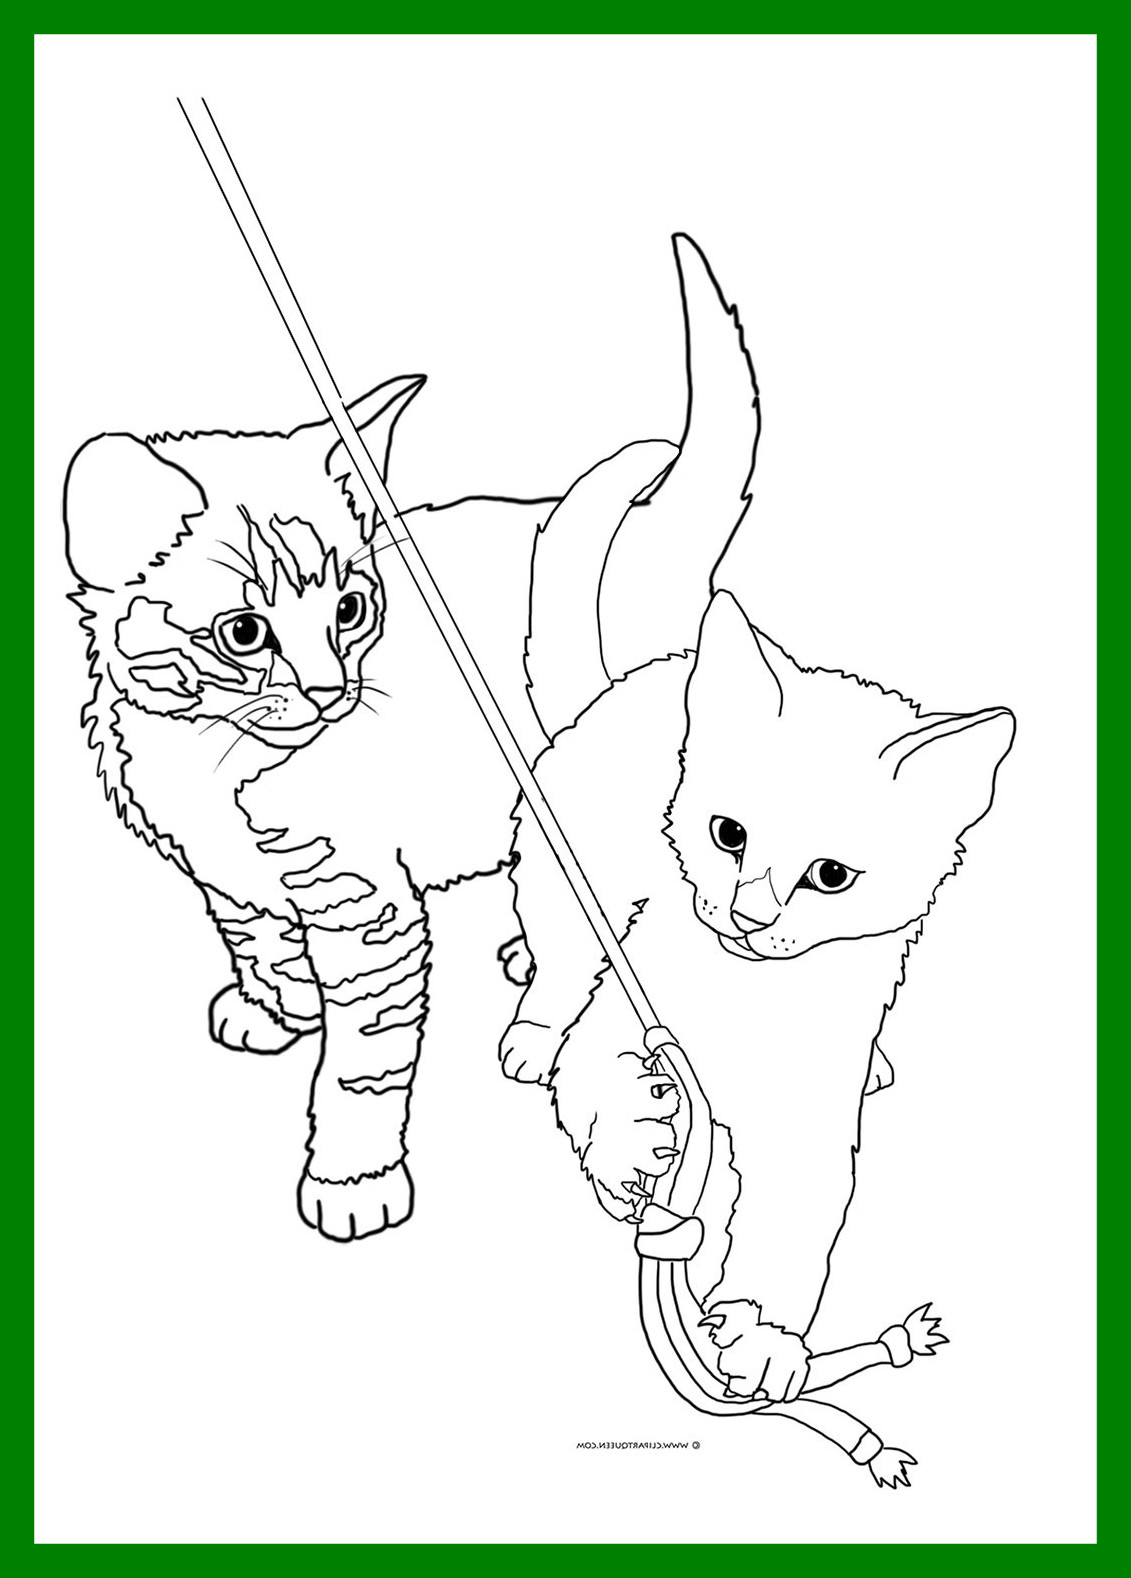 1131x1578 Awesome Kitten Cartoon Drawing At Getdrawings For Personal Use